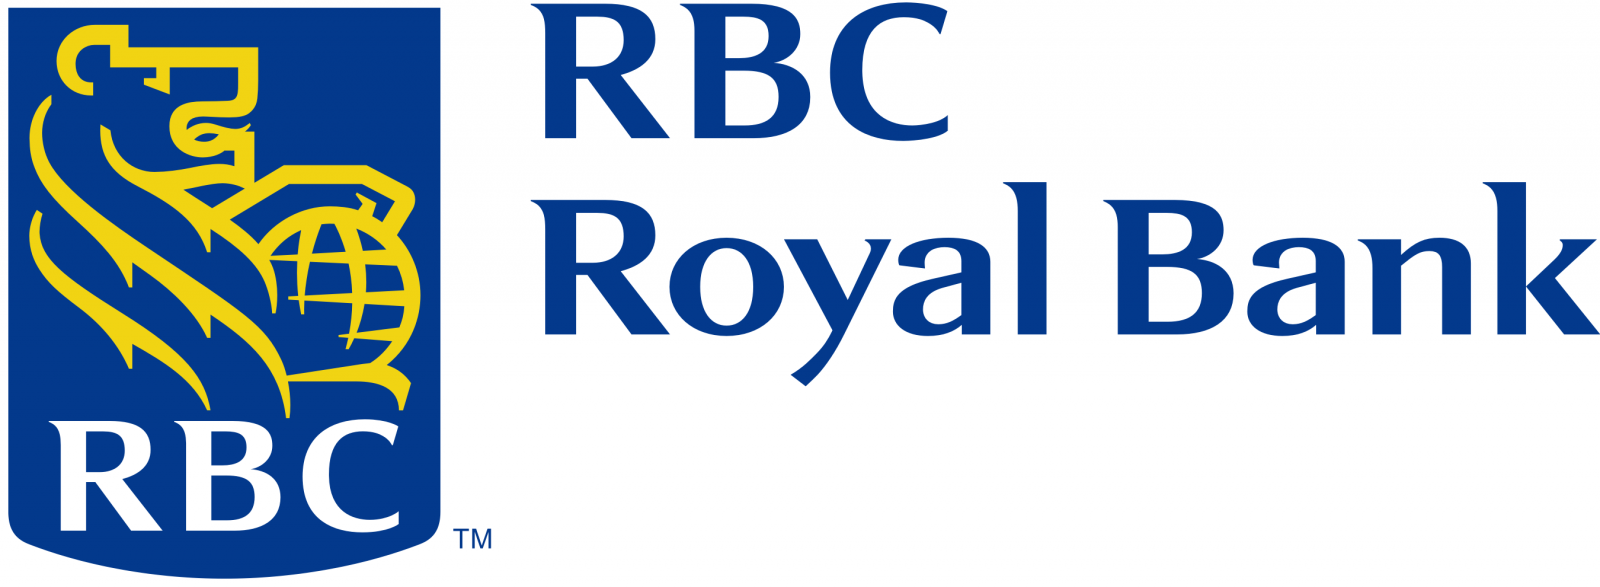 Payment gateway solutions for Royal Bank of Canada, Barbados